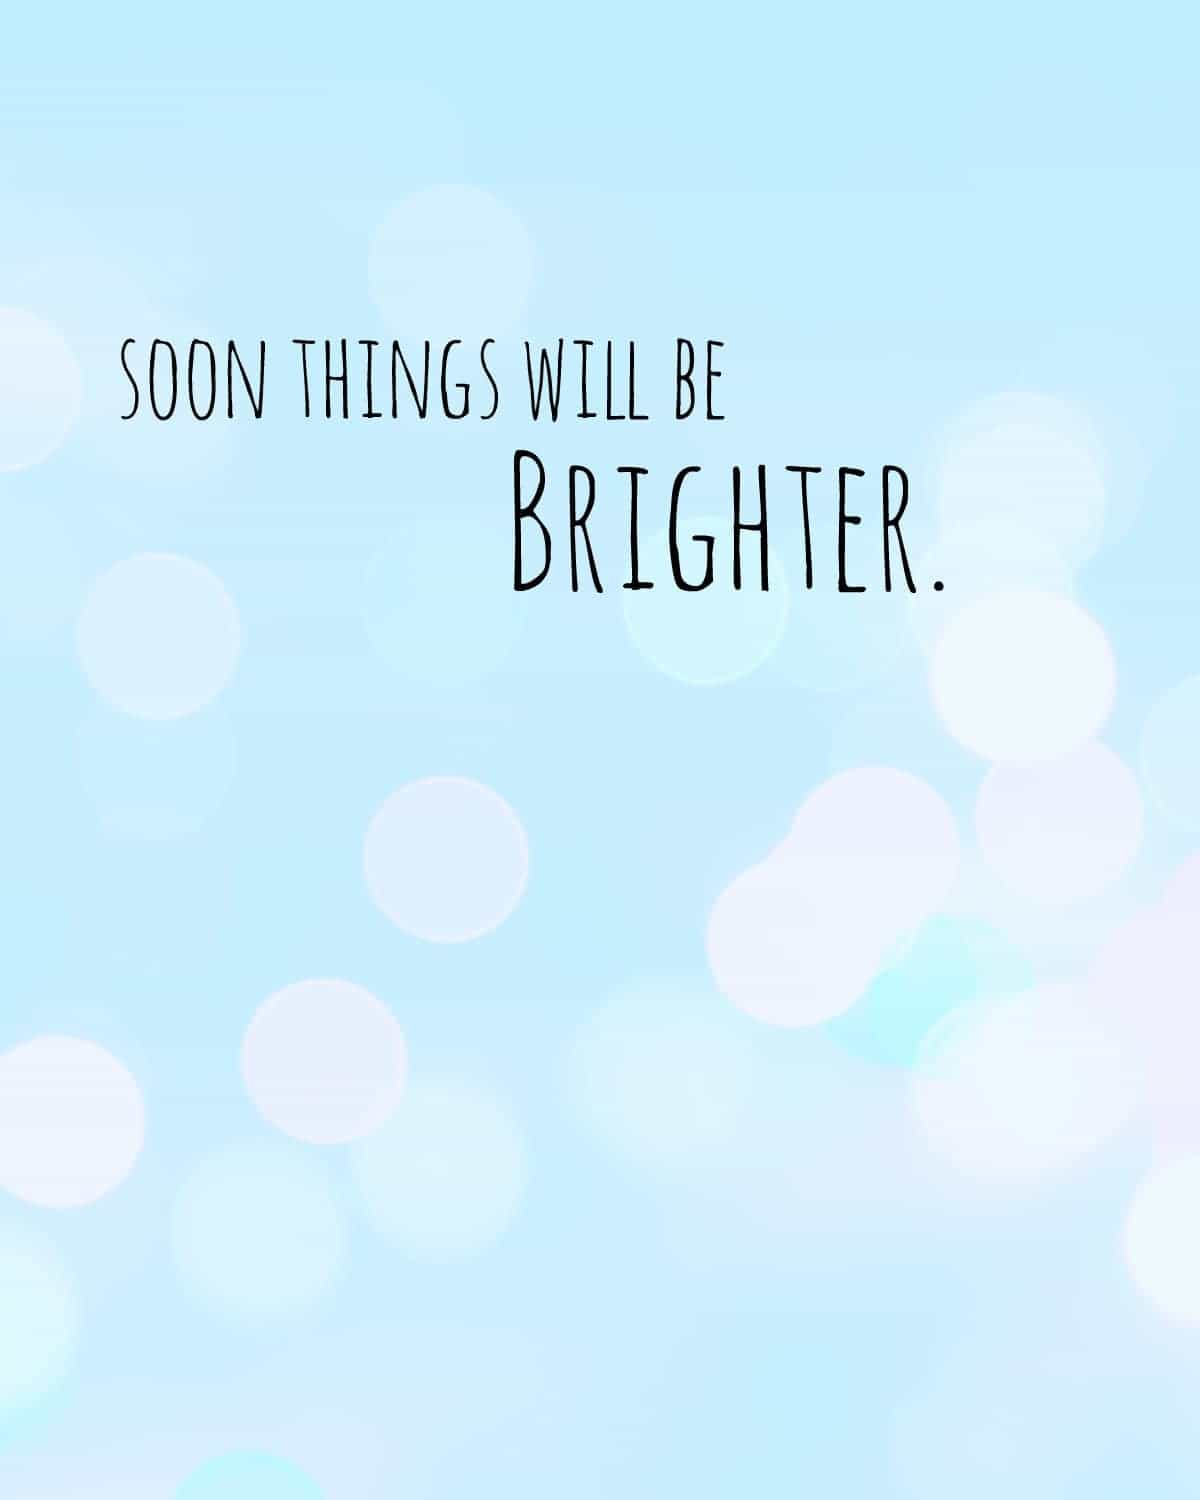 soon things will be brighter